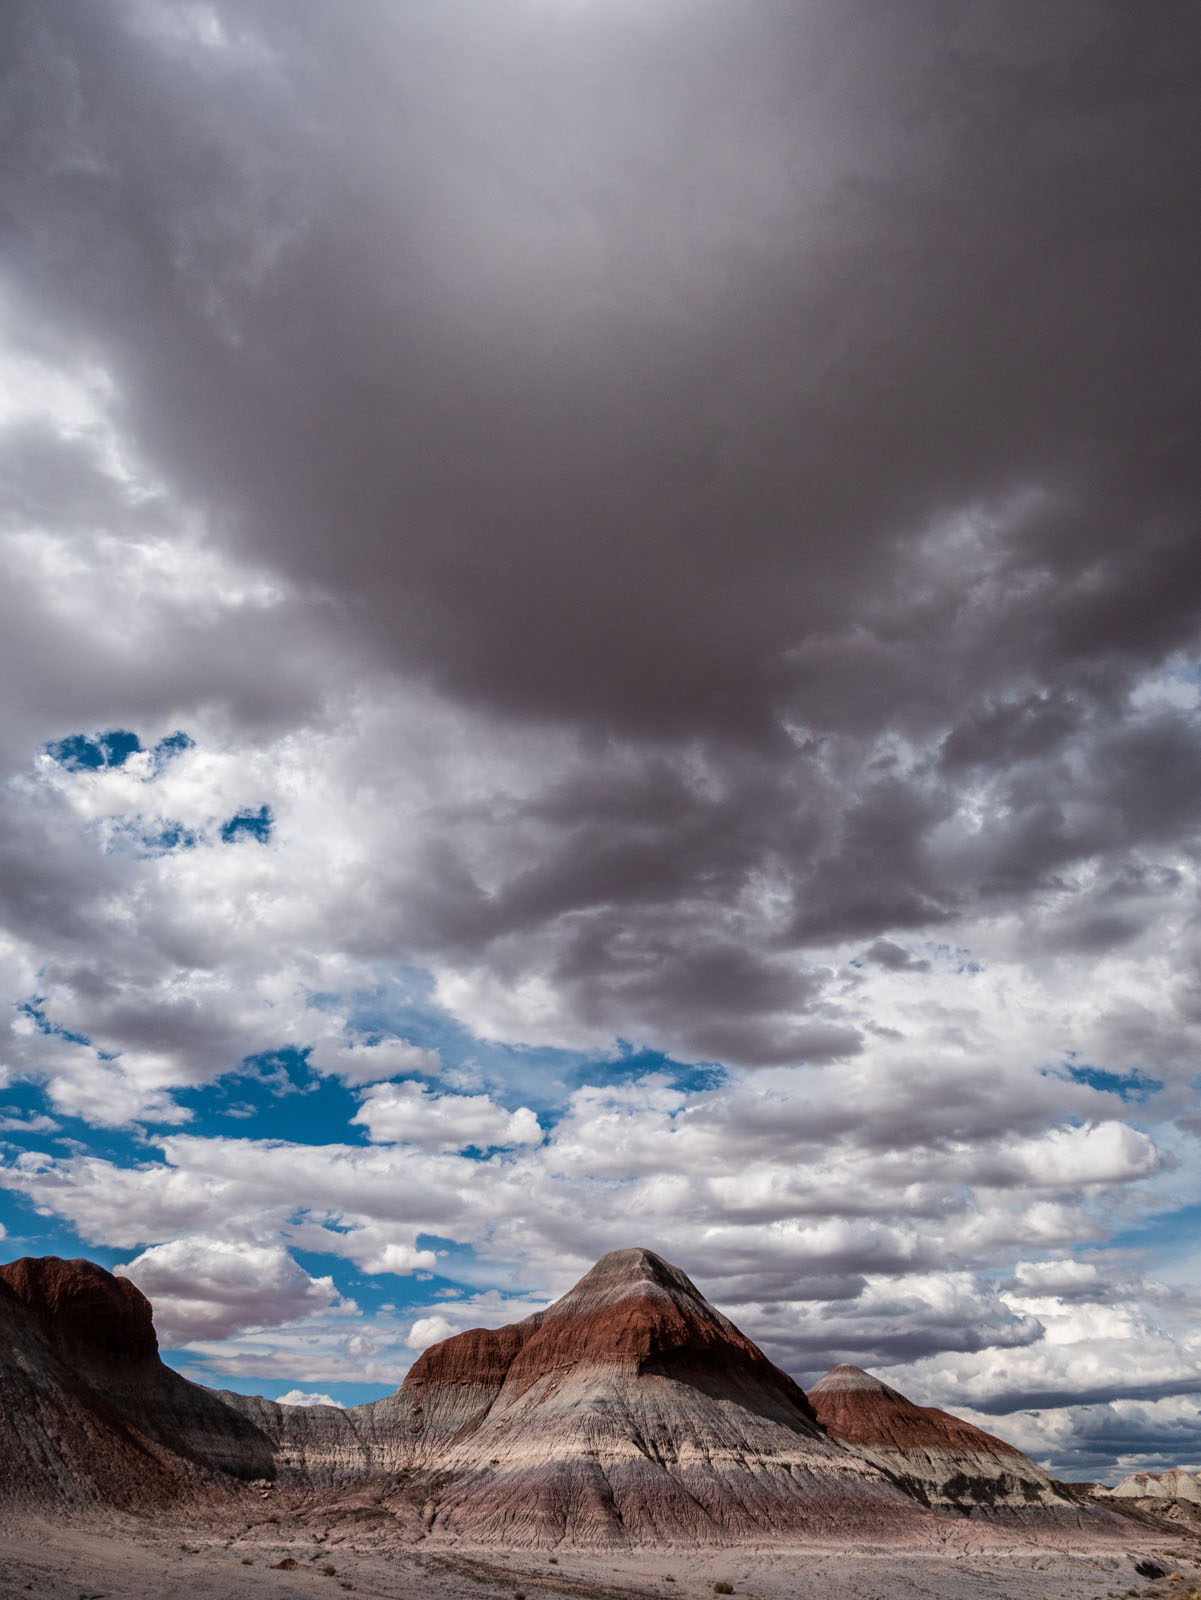 CO_Vacationmoon_PaintedDesert-1010485.jpg